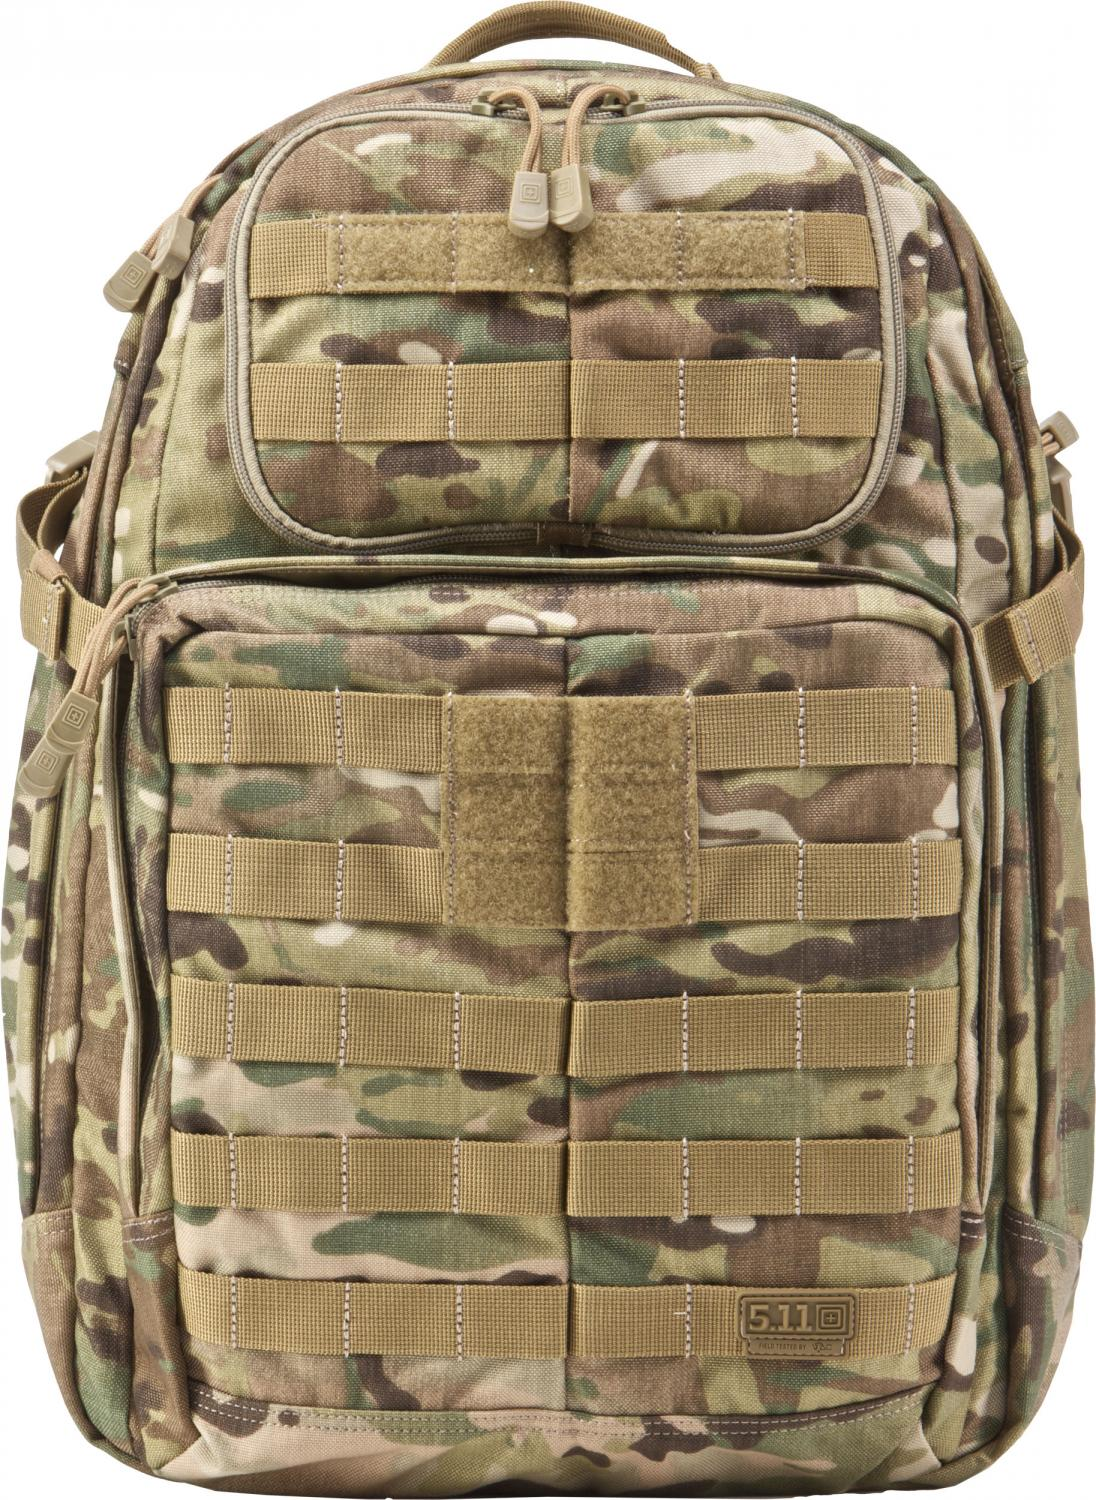 5 11 Tactical Rush 24 Backpack Multicam 56955 169